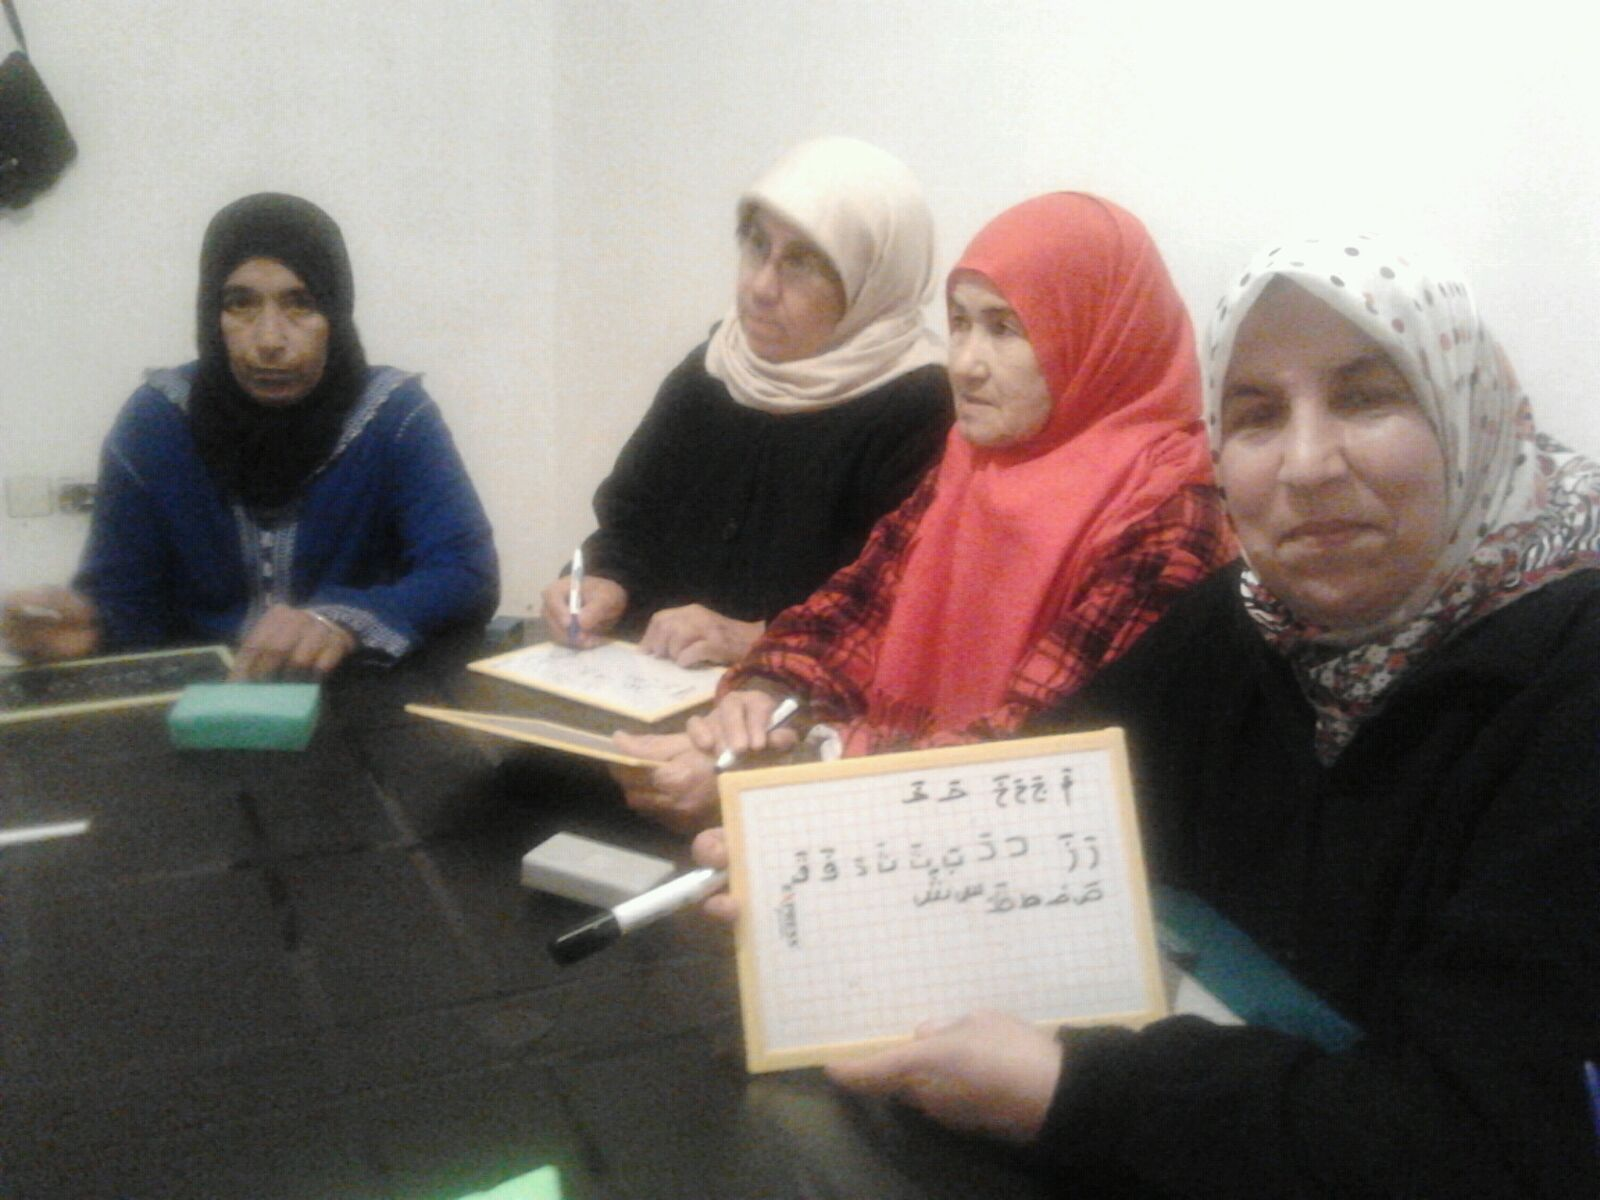 FTW Efforts Help 20 Illiterate Women Learn How to Read and Write at the Morocco Community Center